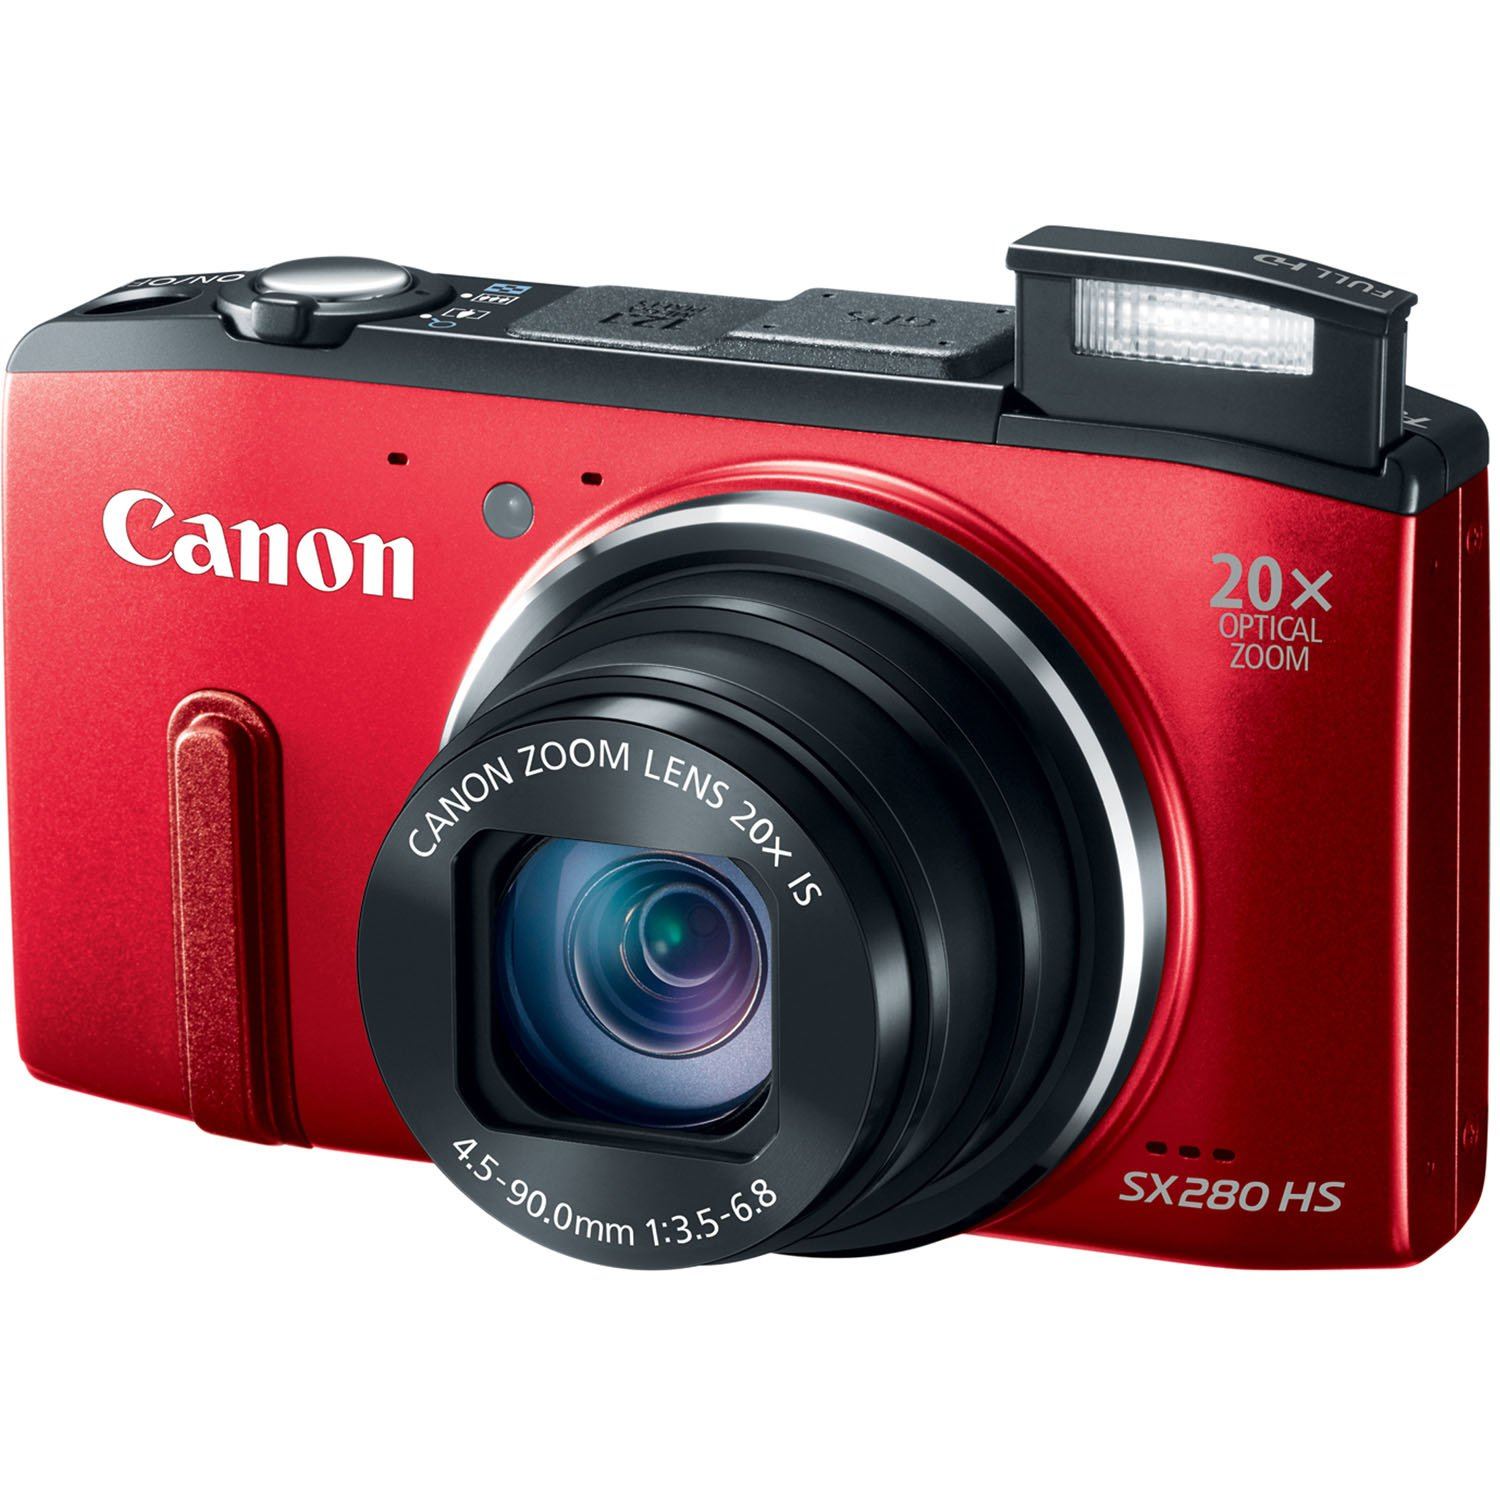 Best Point and Shoot Camera 2014